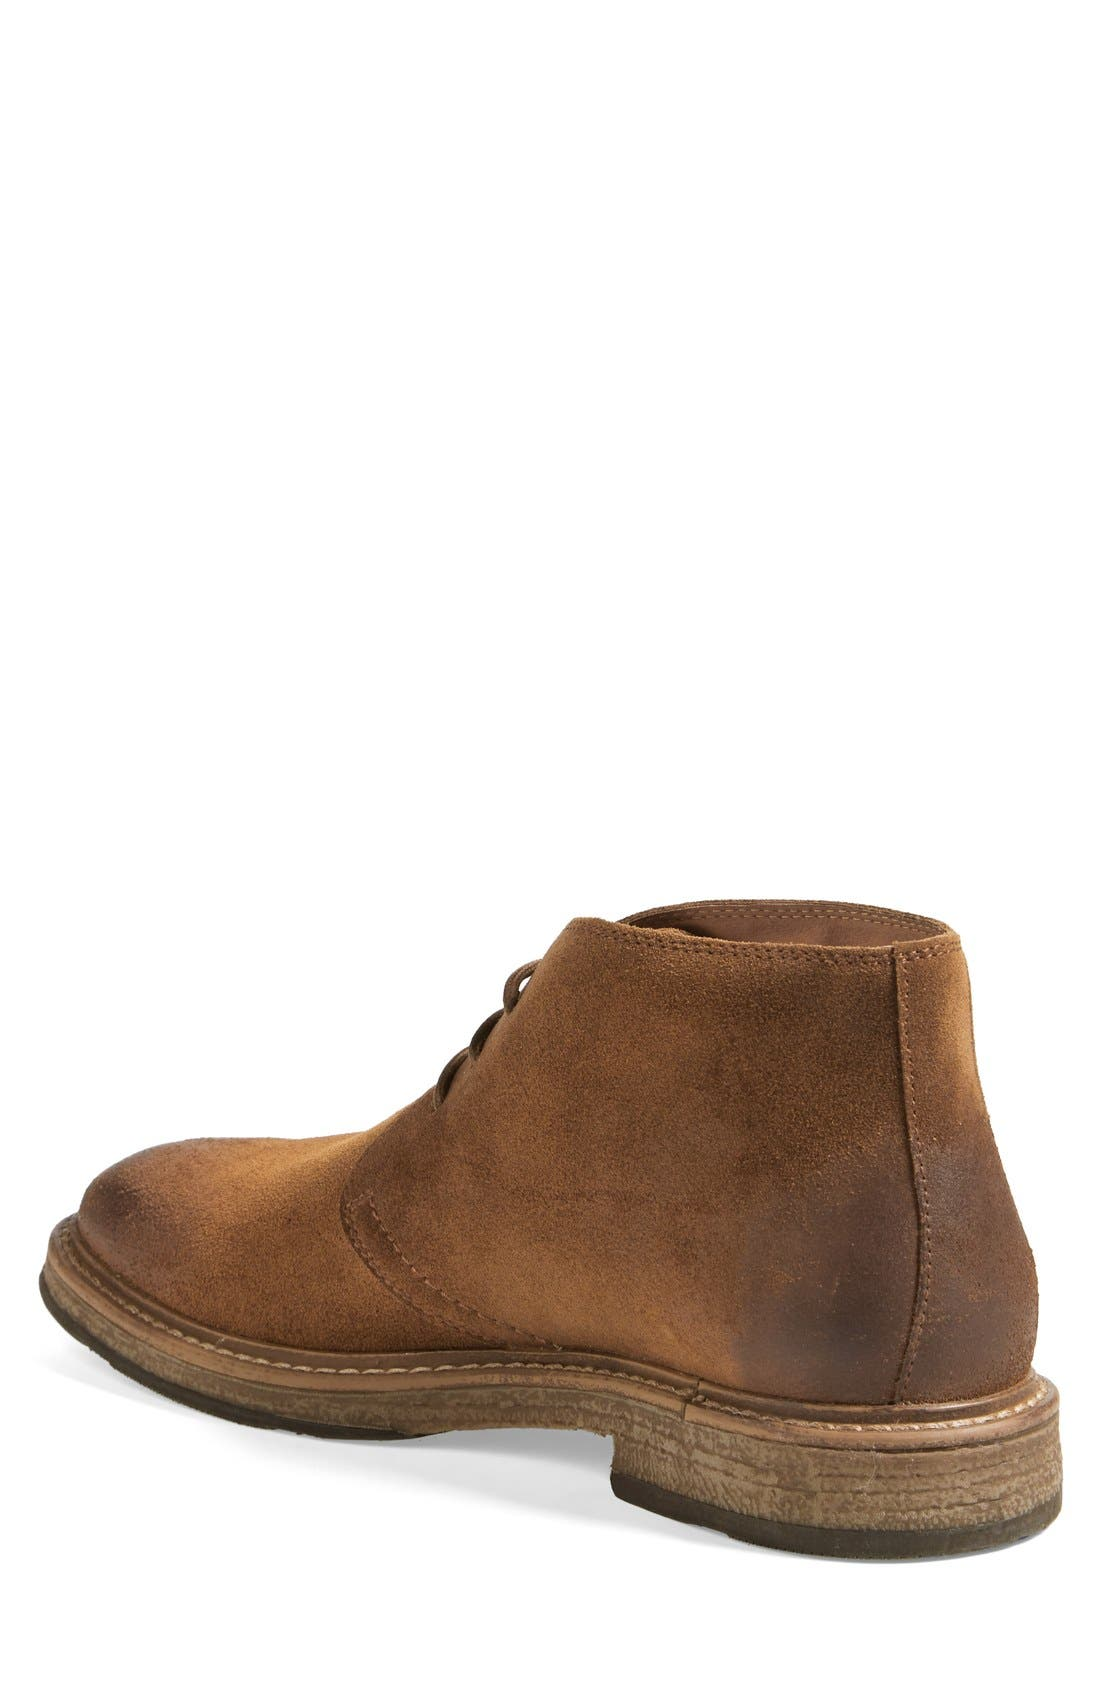 'Canyon' Chukka Boot,                             Alternate thumbnail 20, color,